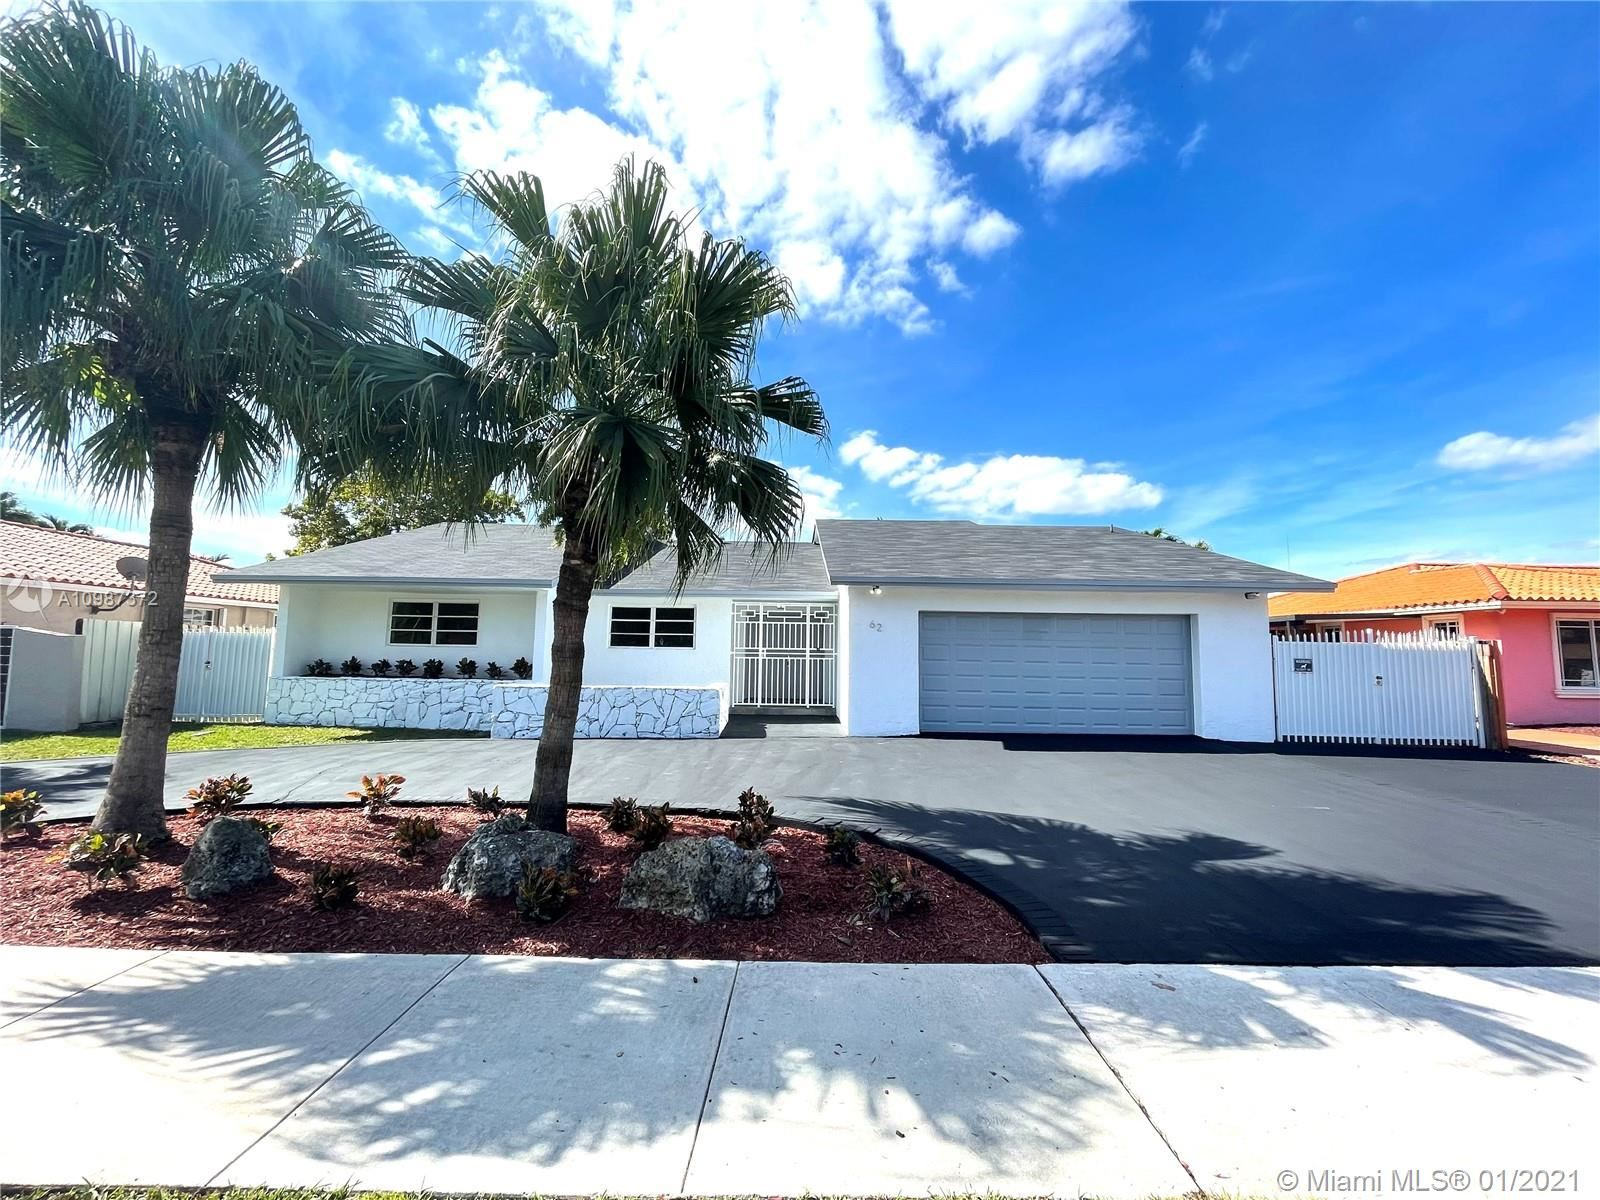 62 SW 134th Ct, Miami, FL 33184 - #: A10987372